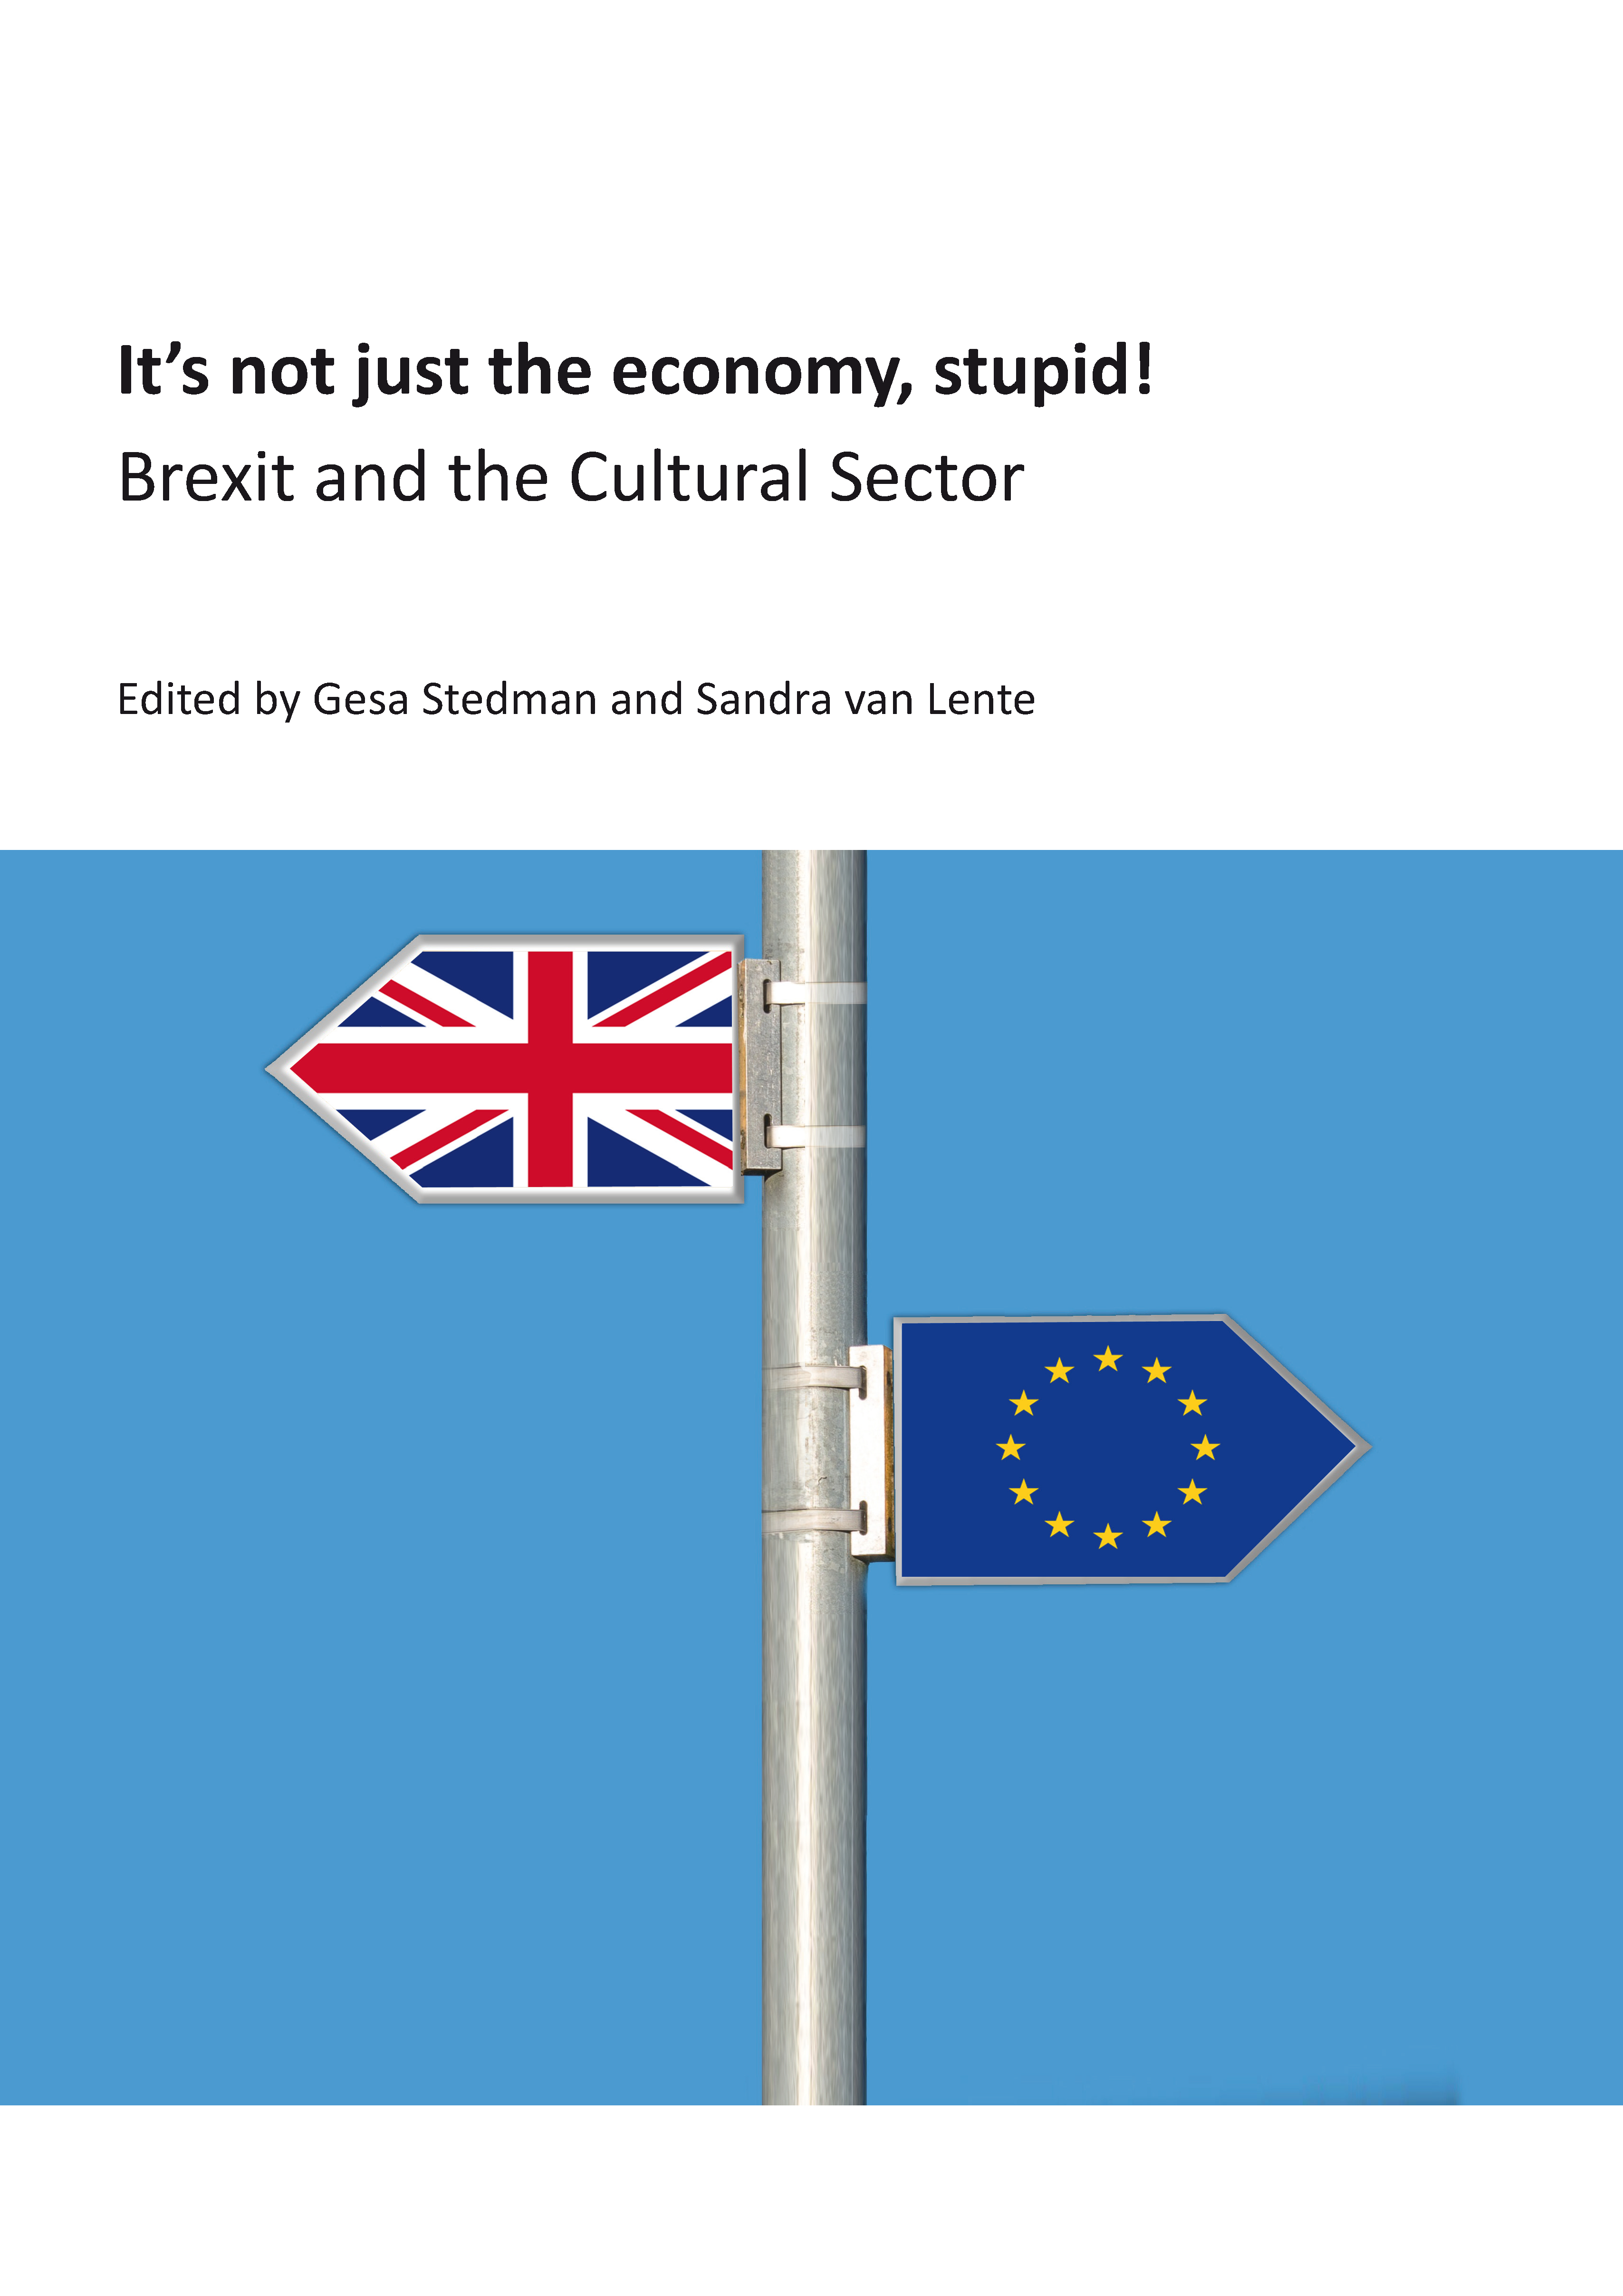 Brexit and Cultural Sector_cover.png